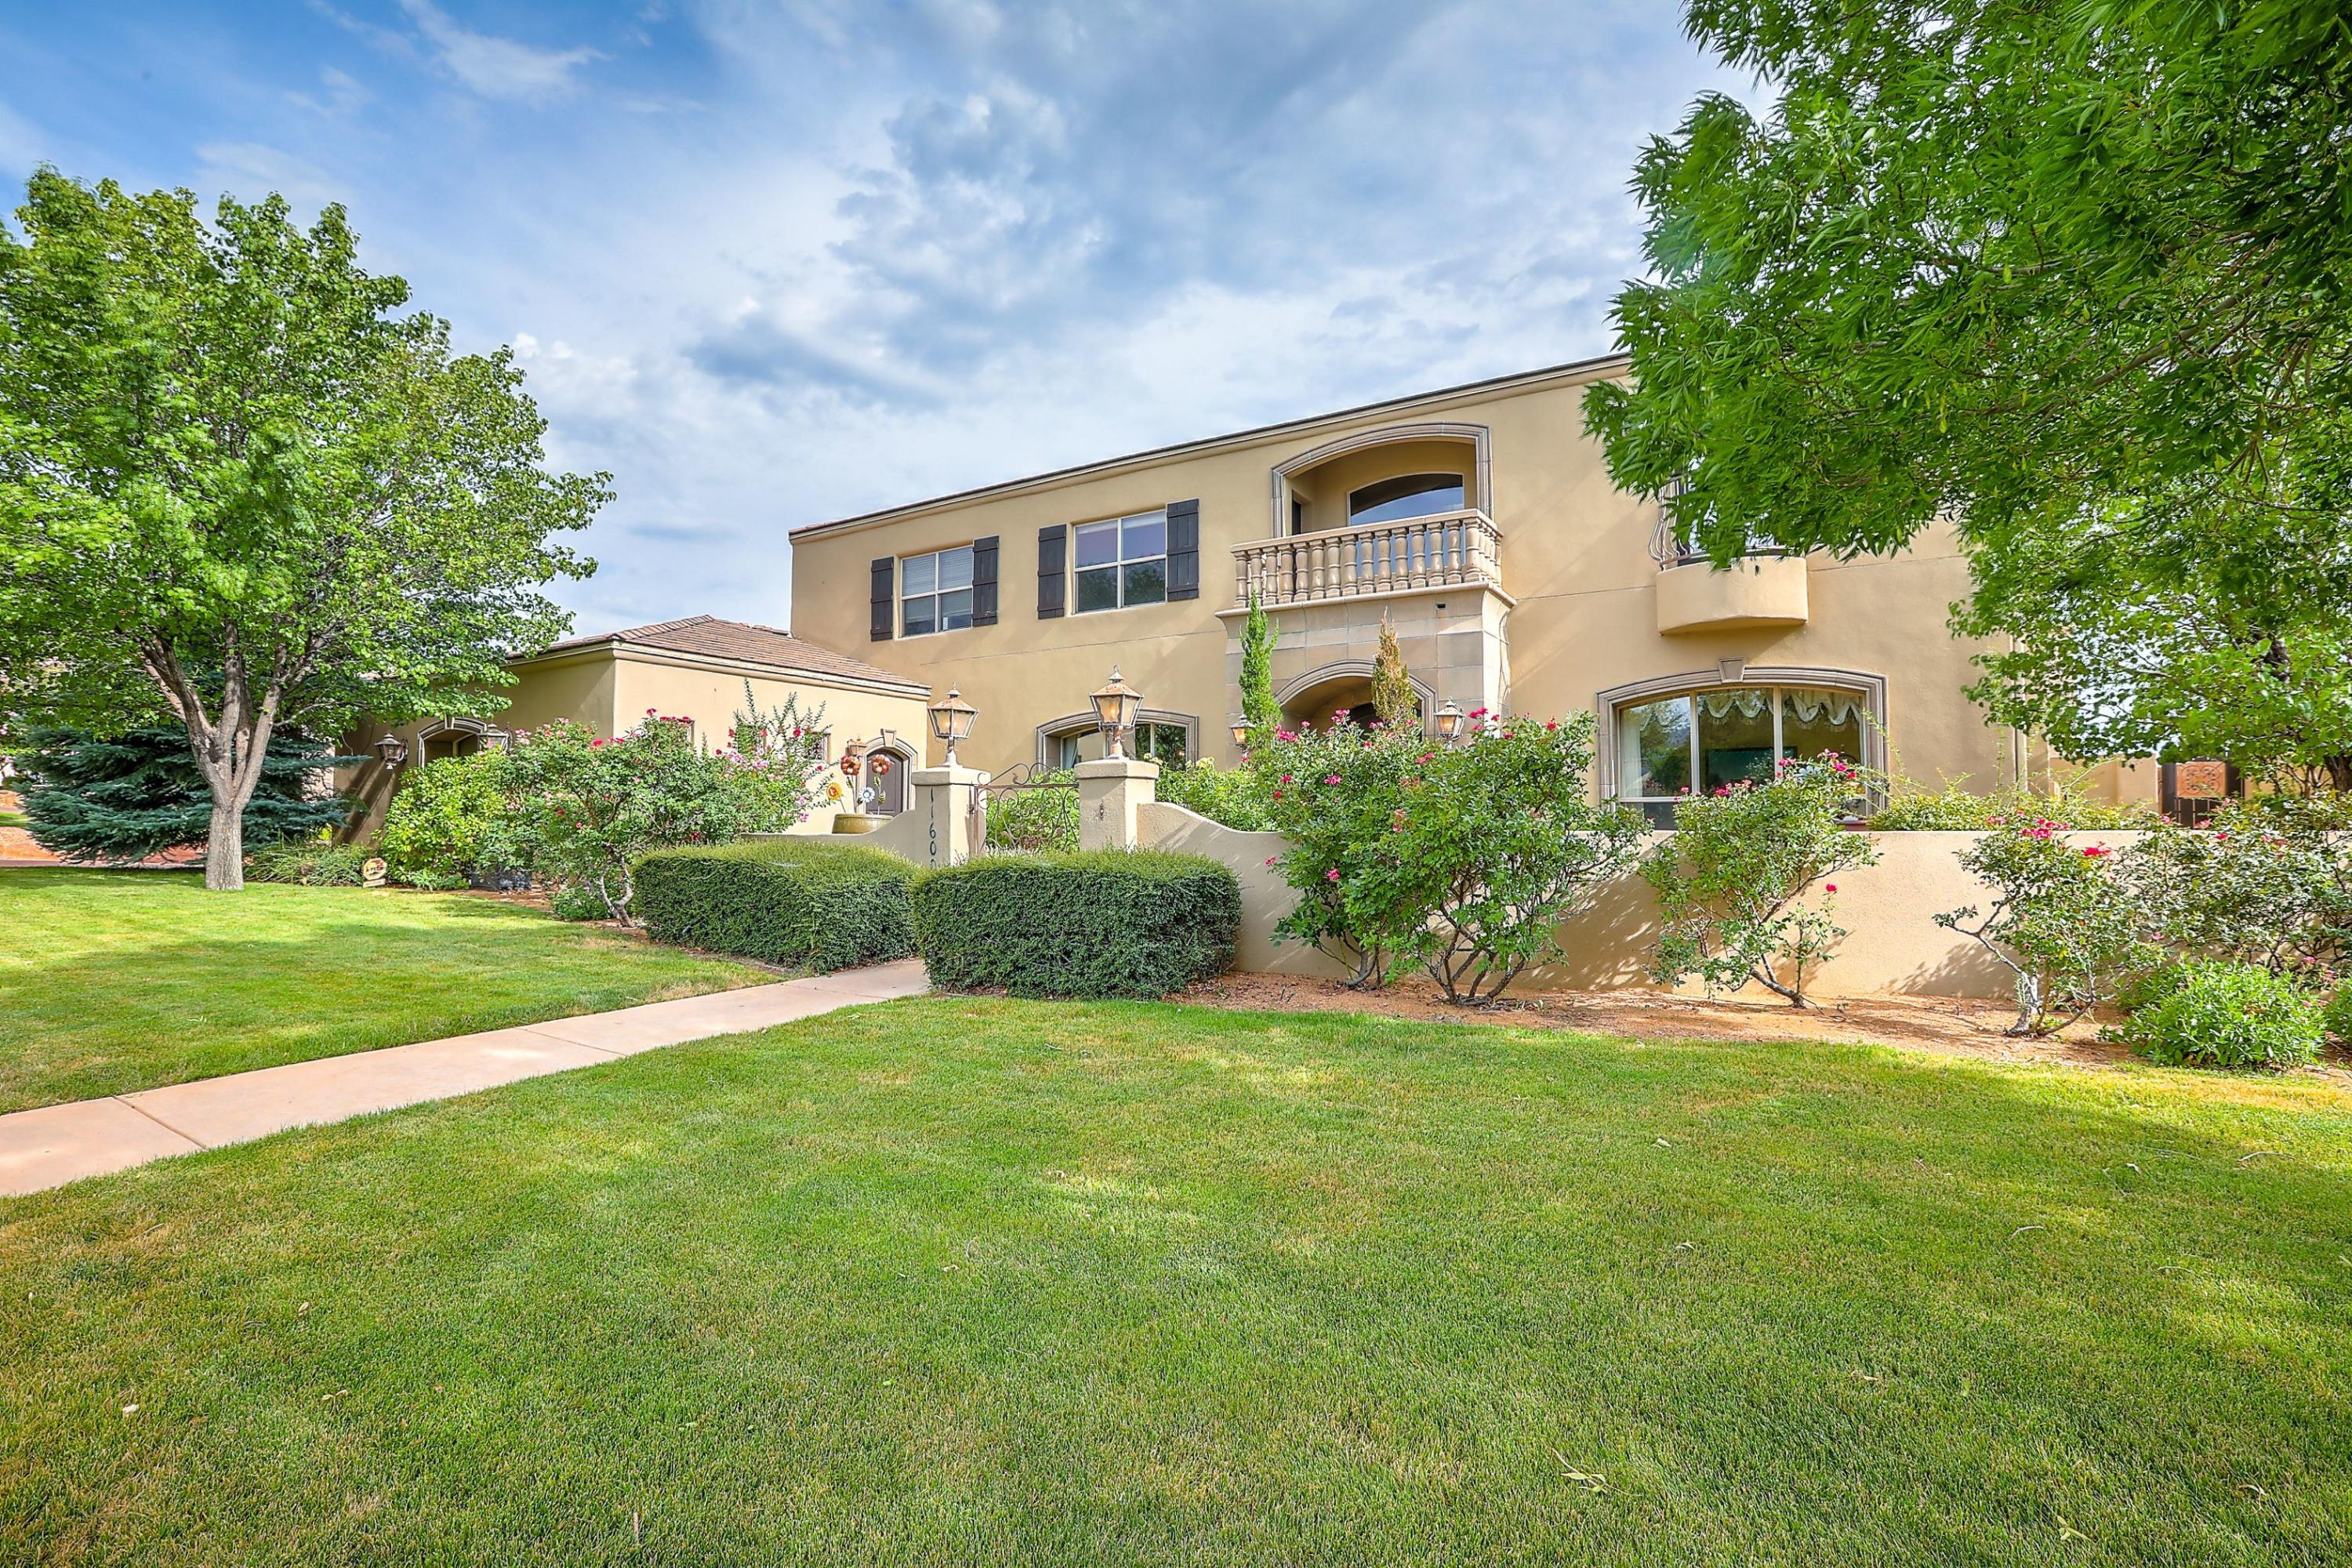 Nestled On Tanoan Golf Course in the Desirable Sauvignon Gated Neighborhood, Your Dream  Mediterranean Villa Awaits. Featuring Sweeping Incredible Views & Obvious Attention To Detail. As You Enter Through The Impressive CourtYard & Arched Wood Door To The Magnificent Entry Hall, Your Eyes Pause At The Sweeping Staircase & Are Immediately Drawn To The Window Wall Views Of the Expansive Back Oasis. The Chef's Kitchen Features Stainless Appliances, Cast Stone Surround WBFP, Two Bar Tops, Ice Maker, Warming Drawer & Kitchen Sink Window. Walk Out To The Back Deck W/New Automatic Awning Cover. The Master EnSuite W/Breathtaking Views Include A FP, Built Ins, Large Walk In Closet & Master Resort Bath. The Lower Level Game Room Overlooks Large Outdoor Covered Patio W/2 Way FP.